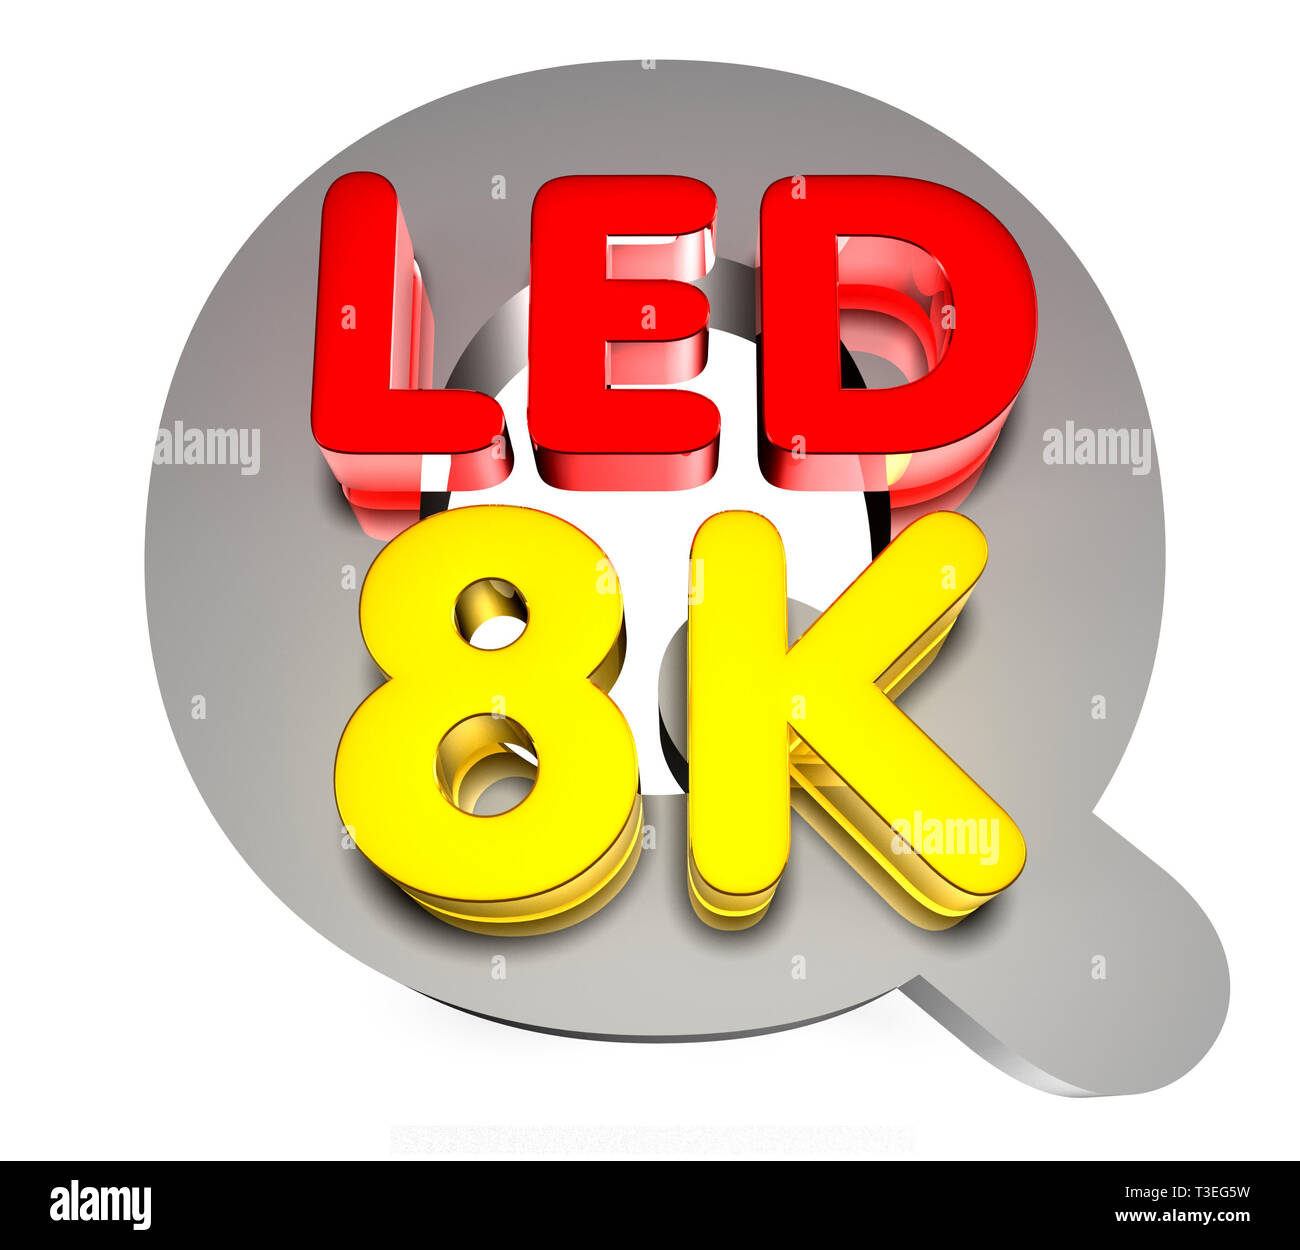 Q lED 8K 3D rendering on white background.With Clipping path. - Stock Image